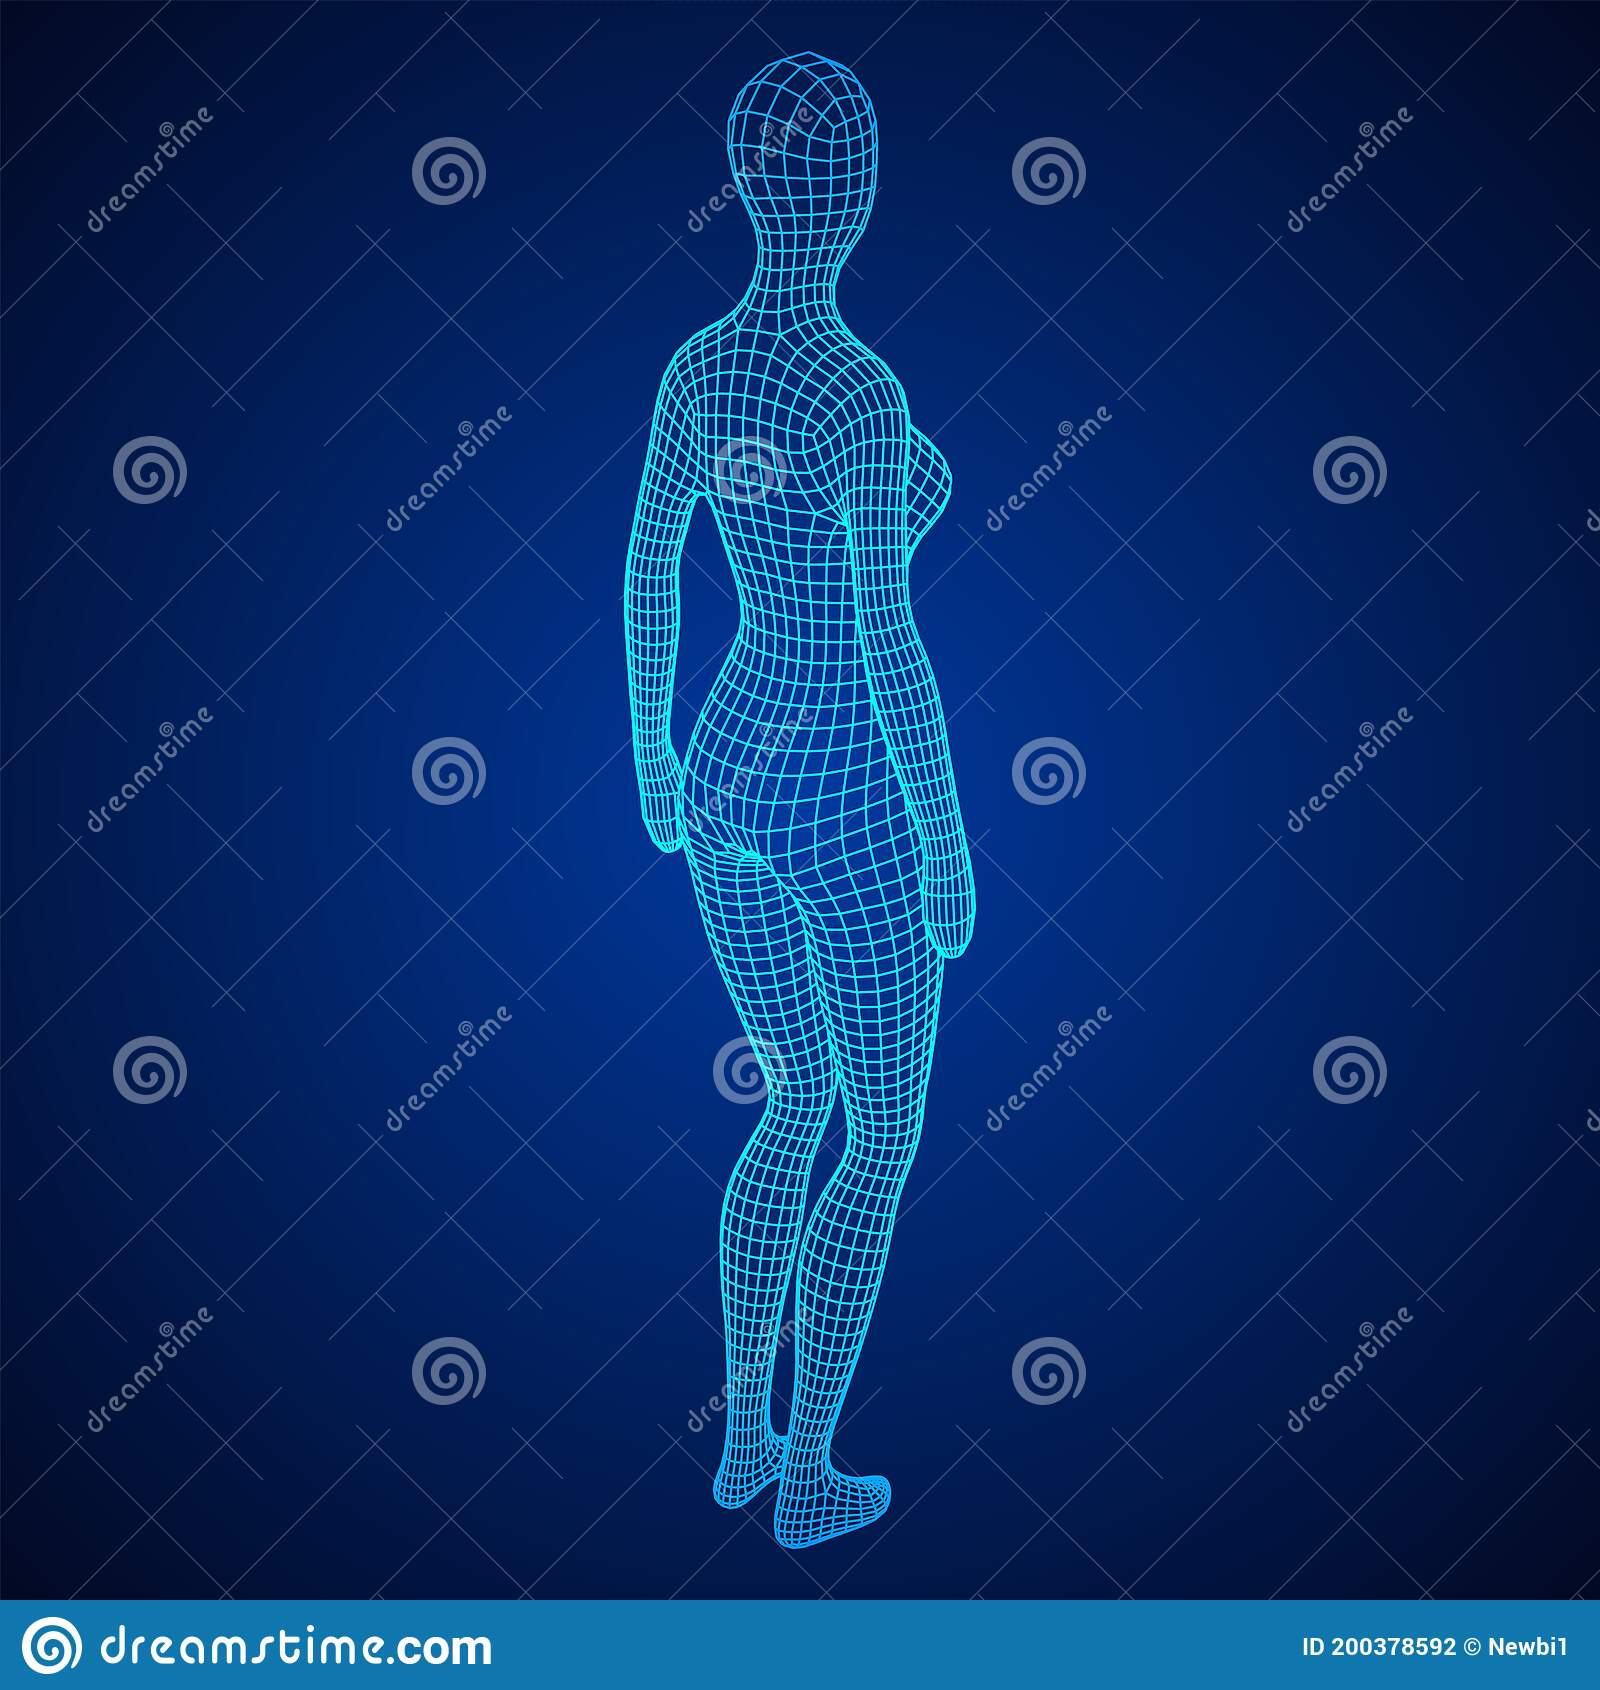 Female Or Woman Anatomy Body Biology Medicine Education Concept Stock Vector Illustration Of Health Conceptual 200378592